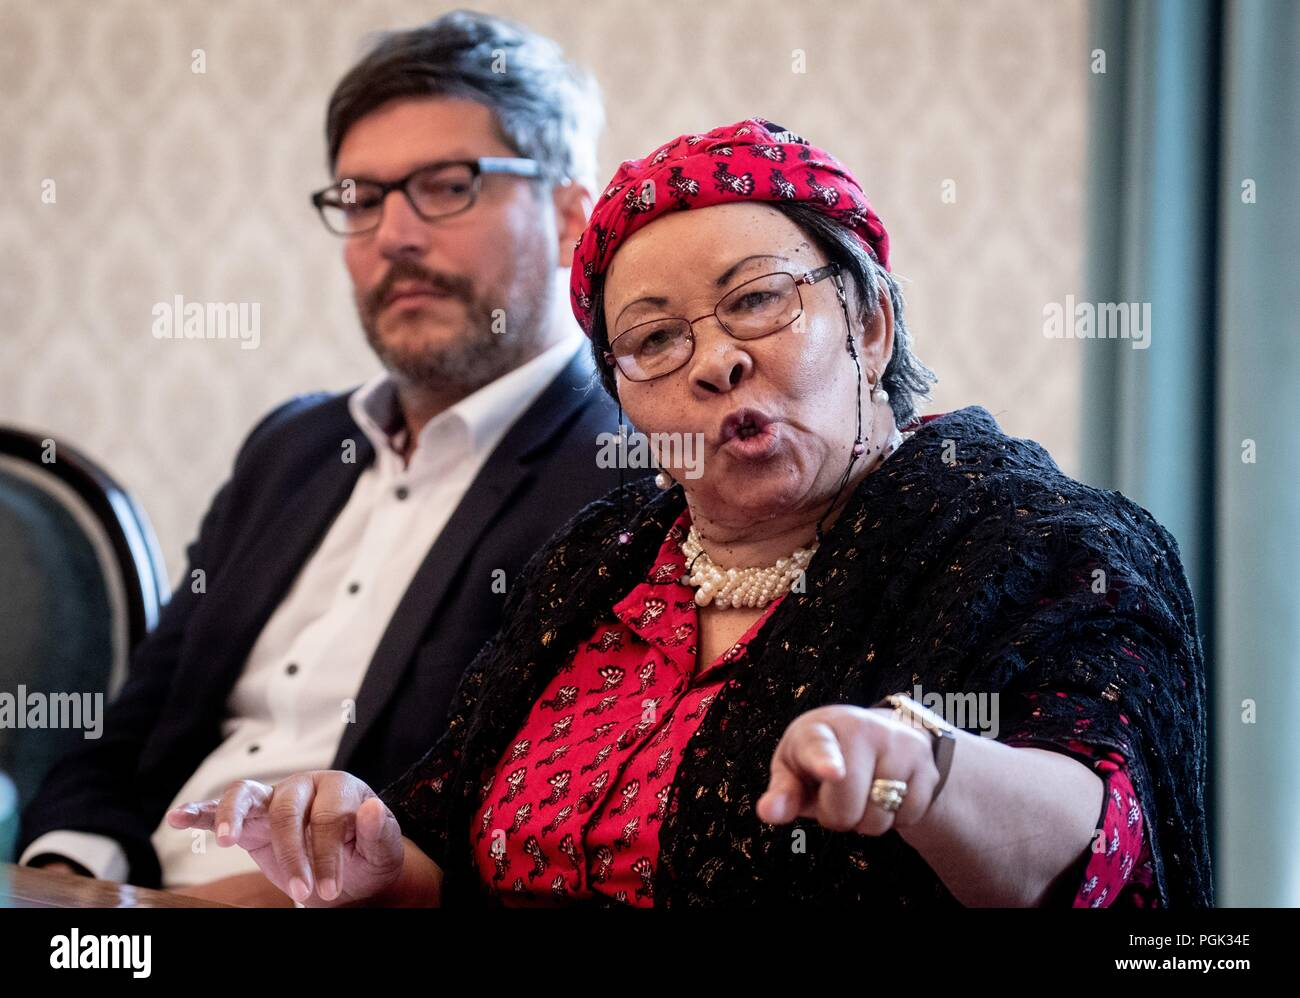 Germany, Berlin. 27th Aug, 2018. Dirk Behrendt (l, Alliance 90/The Greens), Berlin Senator of Justice, and Ida Hoffmann, Member of Parliament and Chairwoman of the Nama Genocide Technical Committee in Namibia, participate in a press conference with a delegation of Ovaherero and Nama from Namibia. This week, stolen remains of Herero and Nama murdered in the 1904-08 genocide are to be returned to a government delegation from Namibia. Credit: Kay Nietfeld/dpa/Alamy Live News - Stock Image